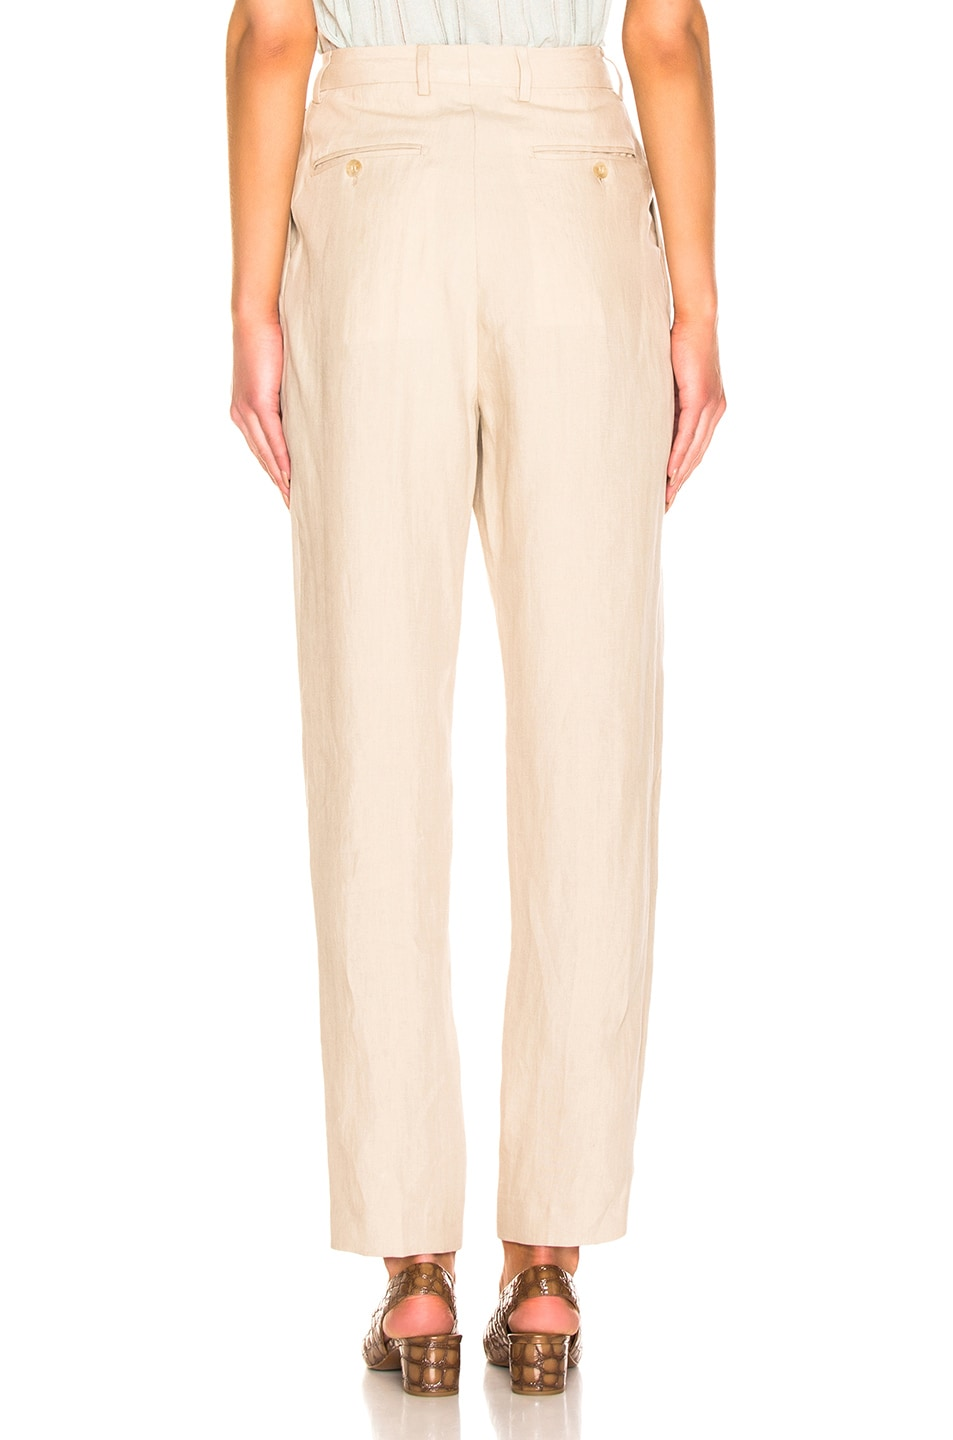 Image 3 of Acne Studios Pati Pant in Sand Beige